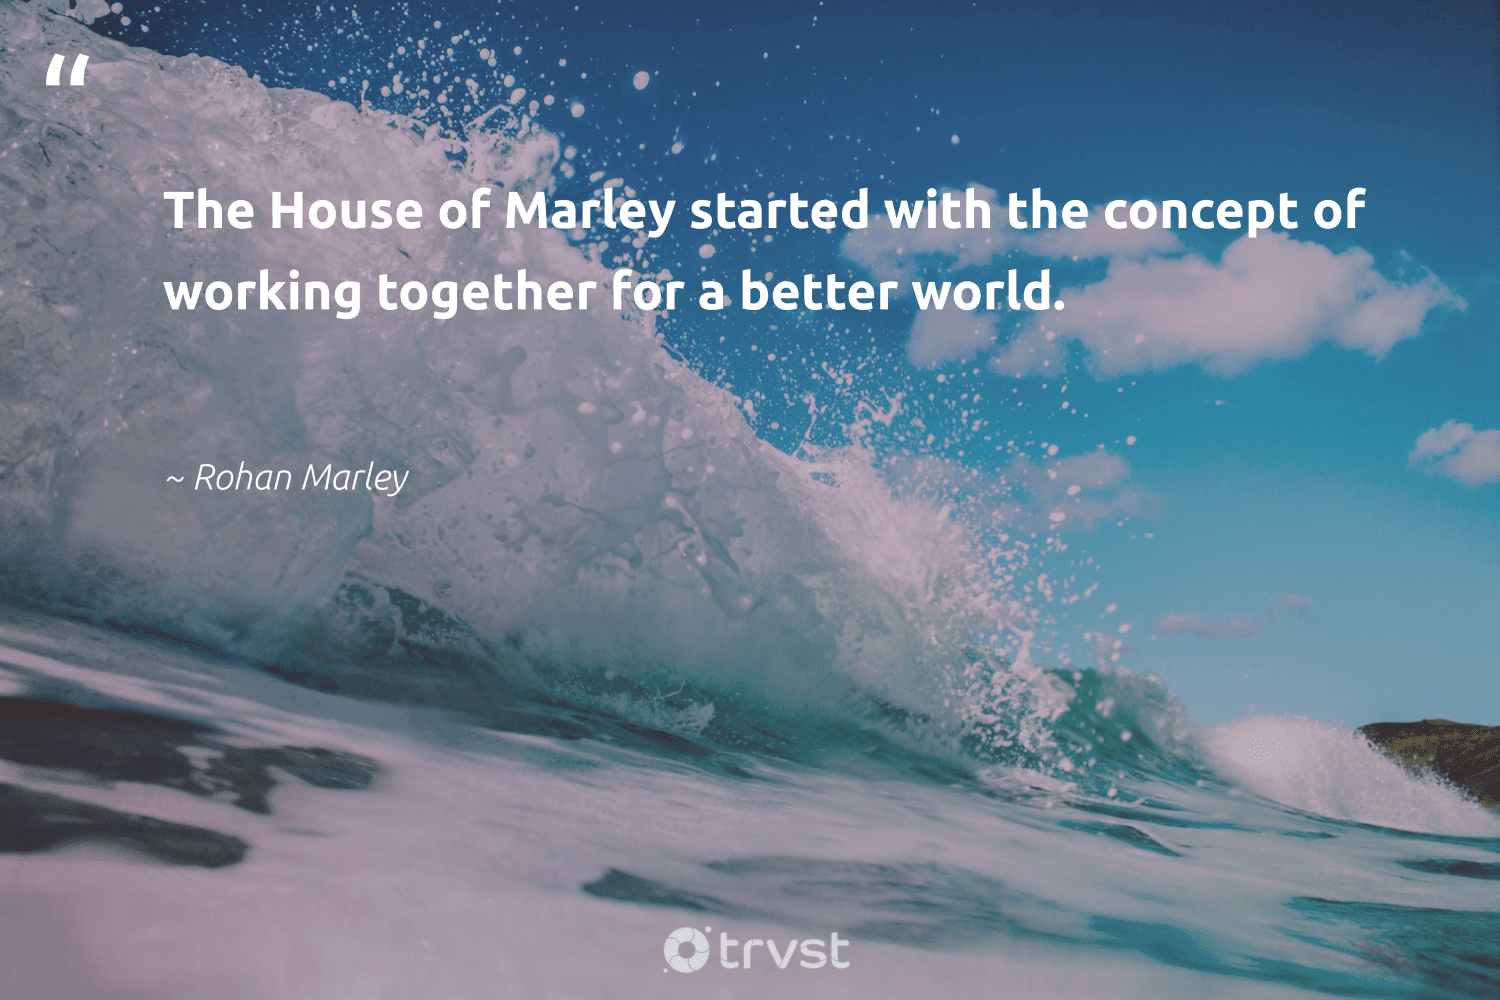 """""""The House of Marley started with the concept of working together for a better world.""""  - Rohan Marley #trvst #quotes #workingtogether #nevergiveup #planetearthfirst #begreat #dogood #futureofwork #beinspired #softskills #changetheworld #dosomething"""